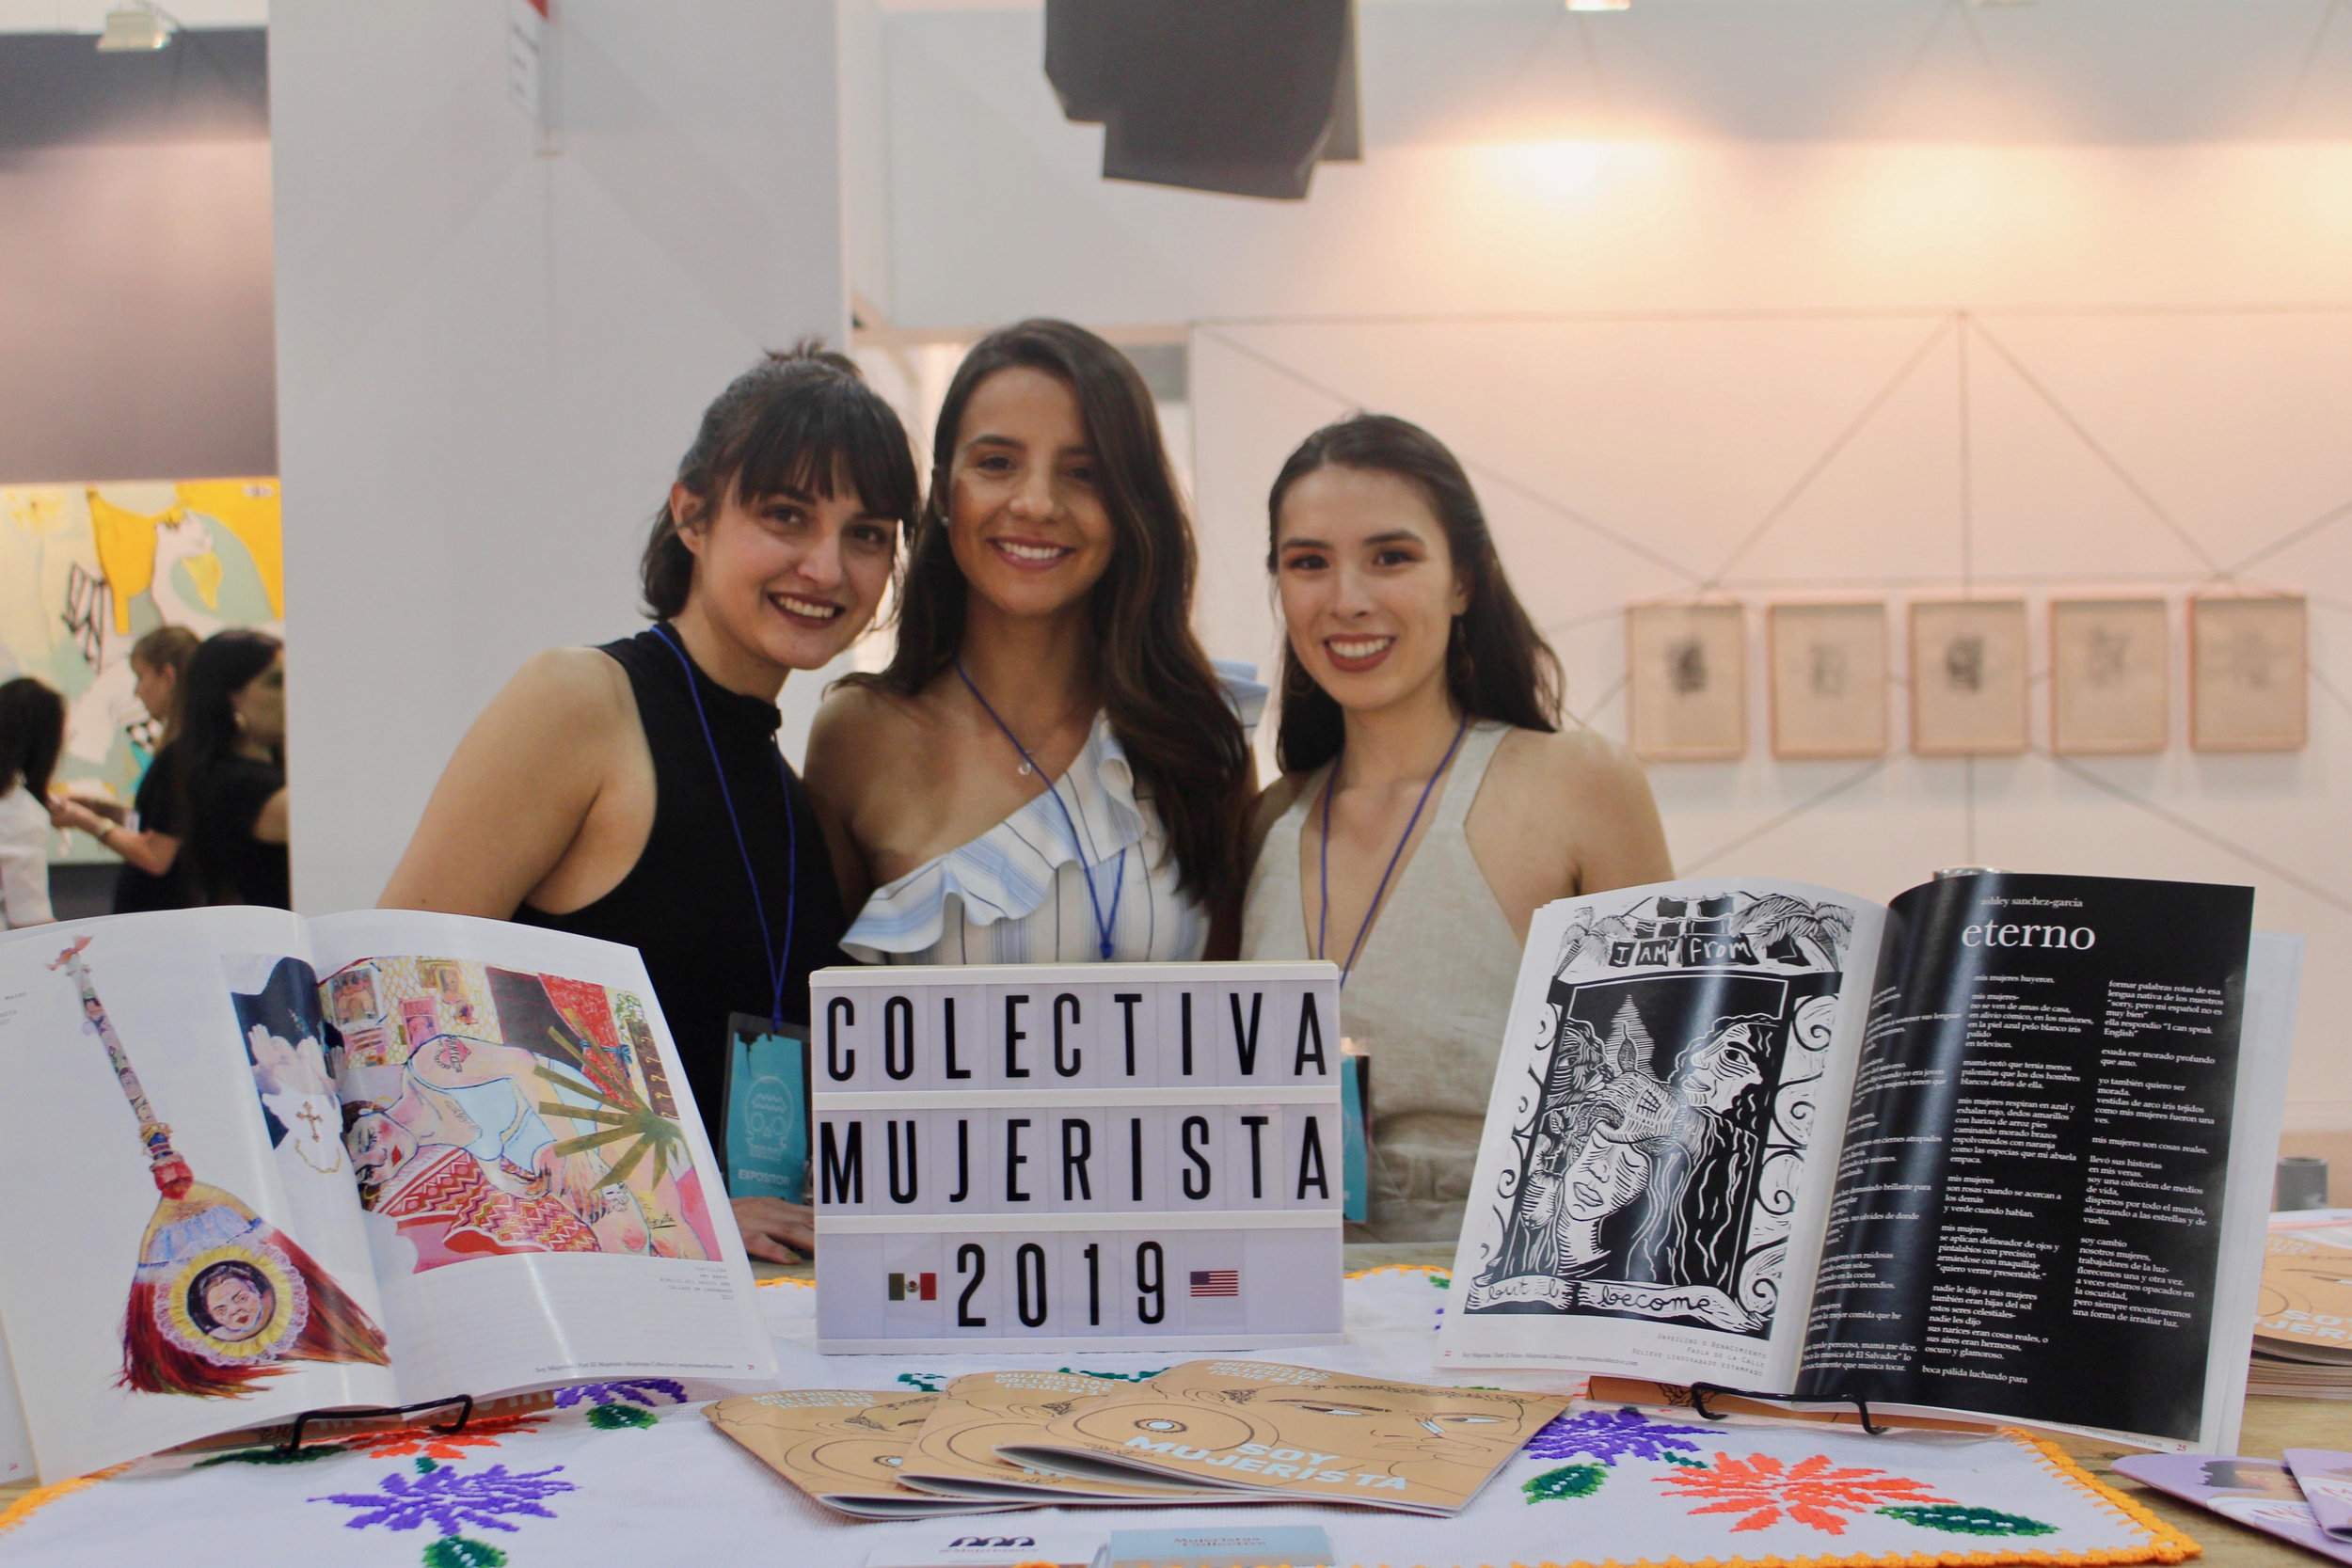 Mujeristas Collective at ZonaMaco, an international art fair in Mexico City, February 2019.